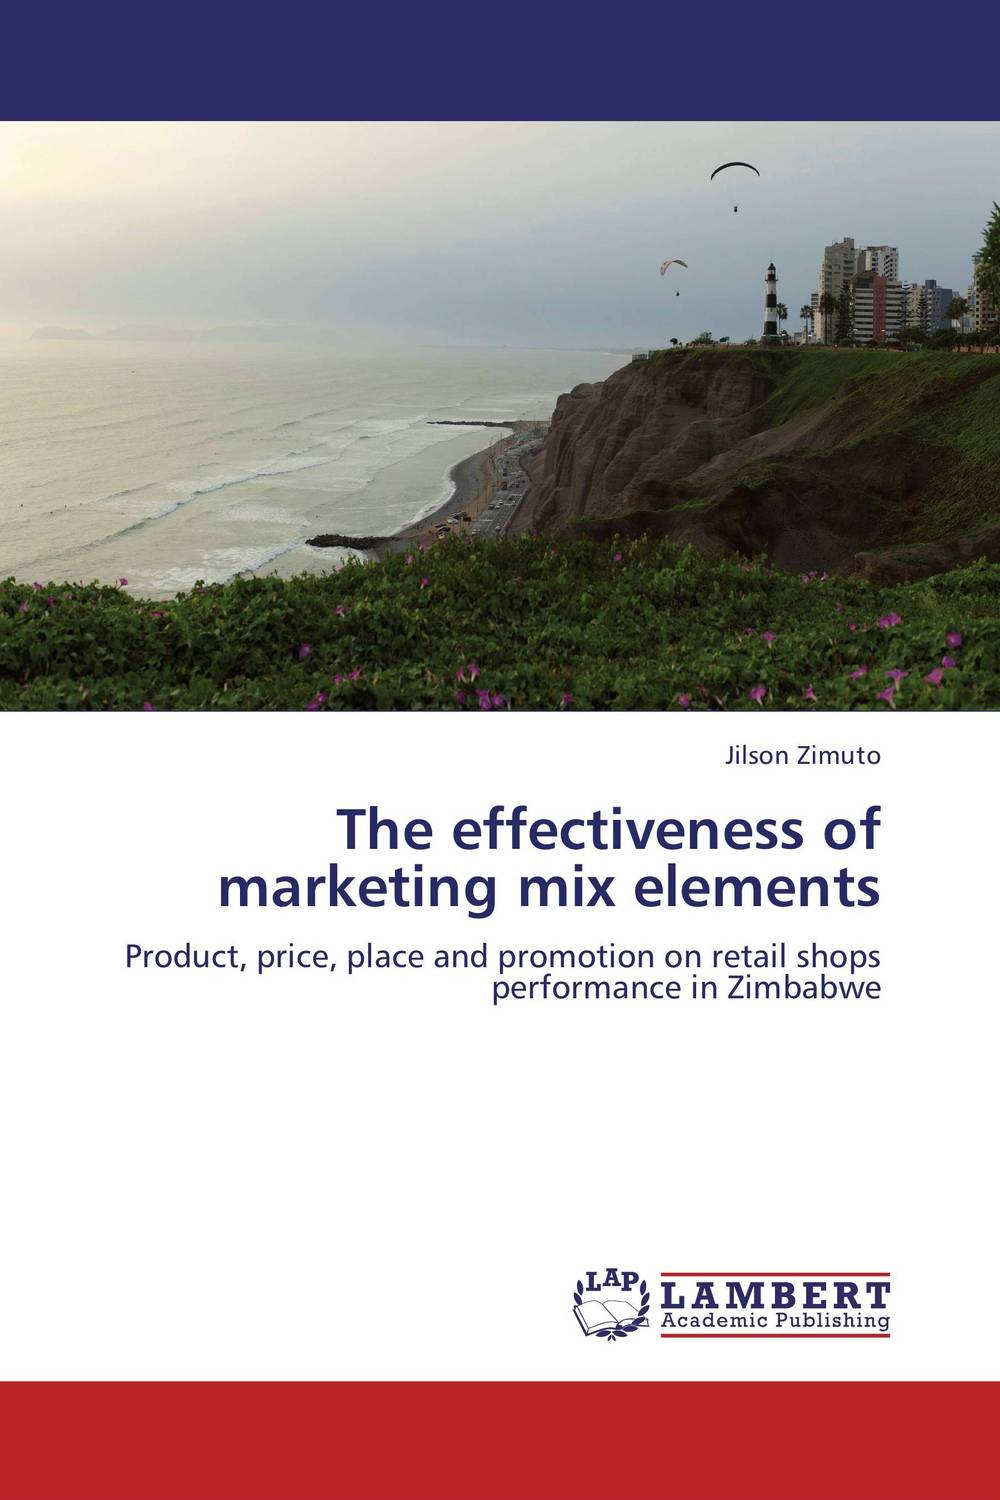 The effectiveness of marketing mix elements